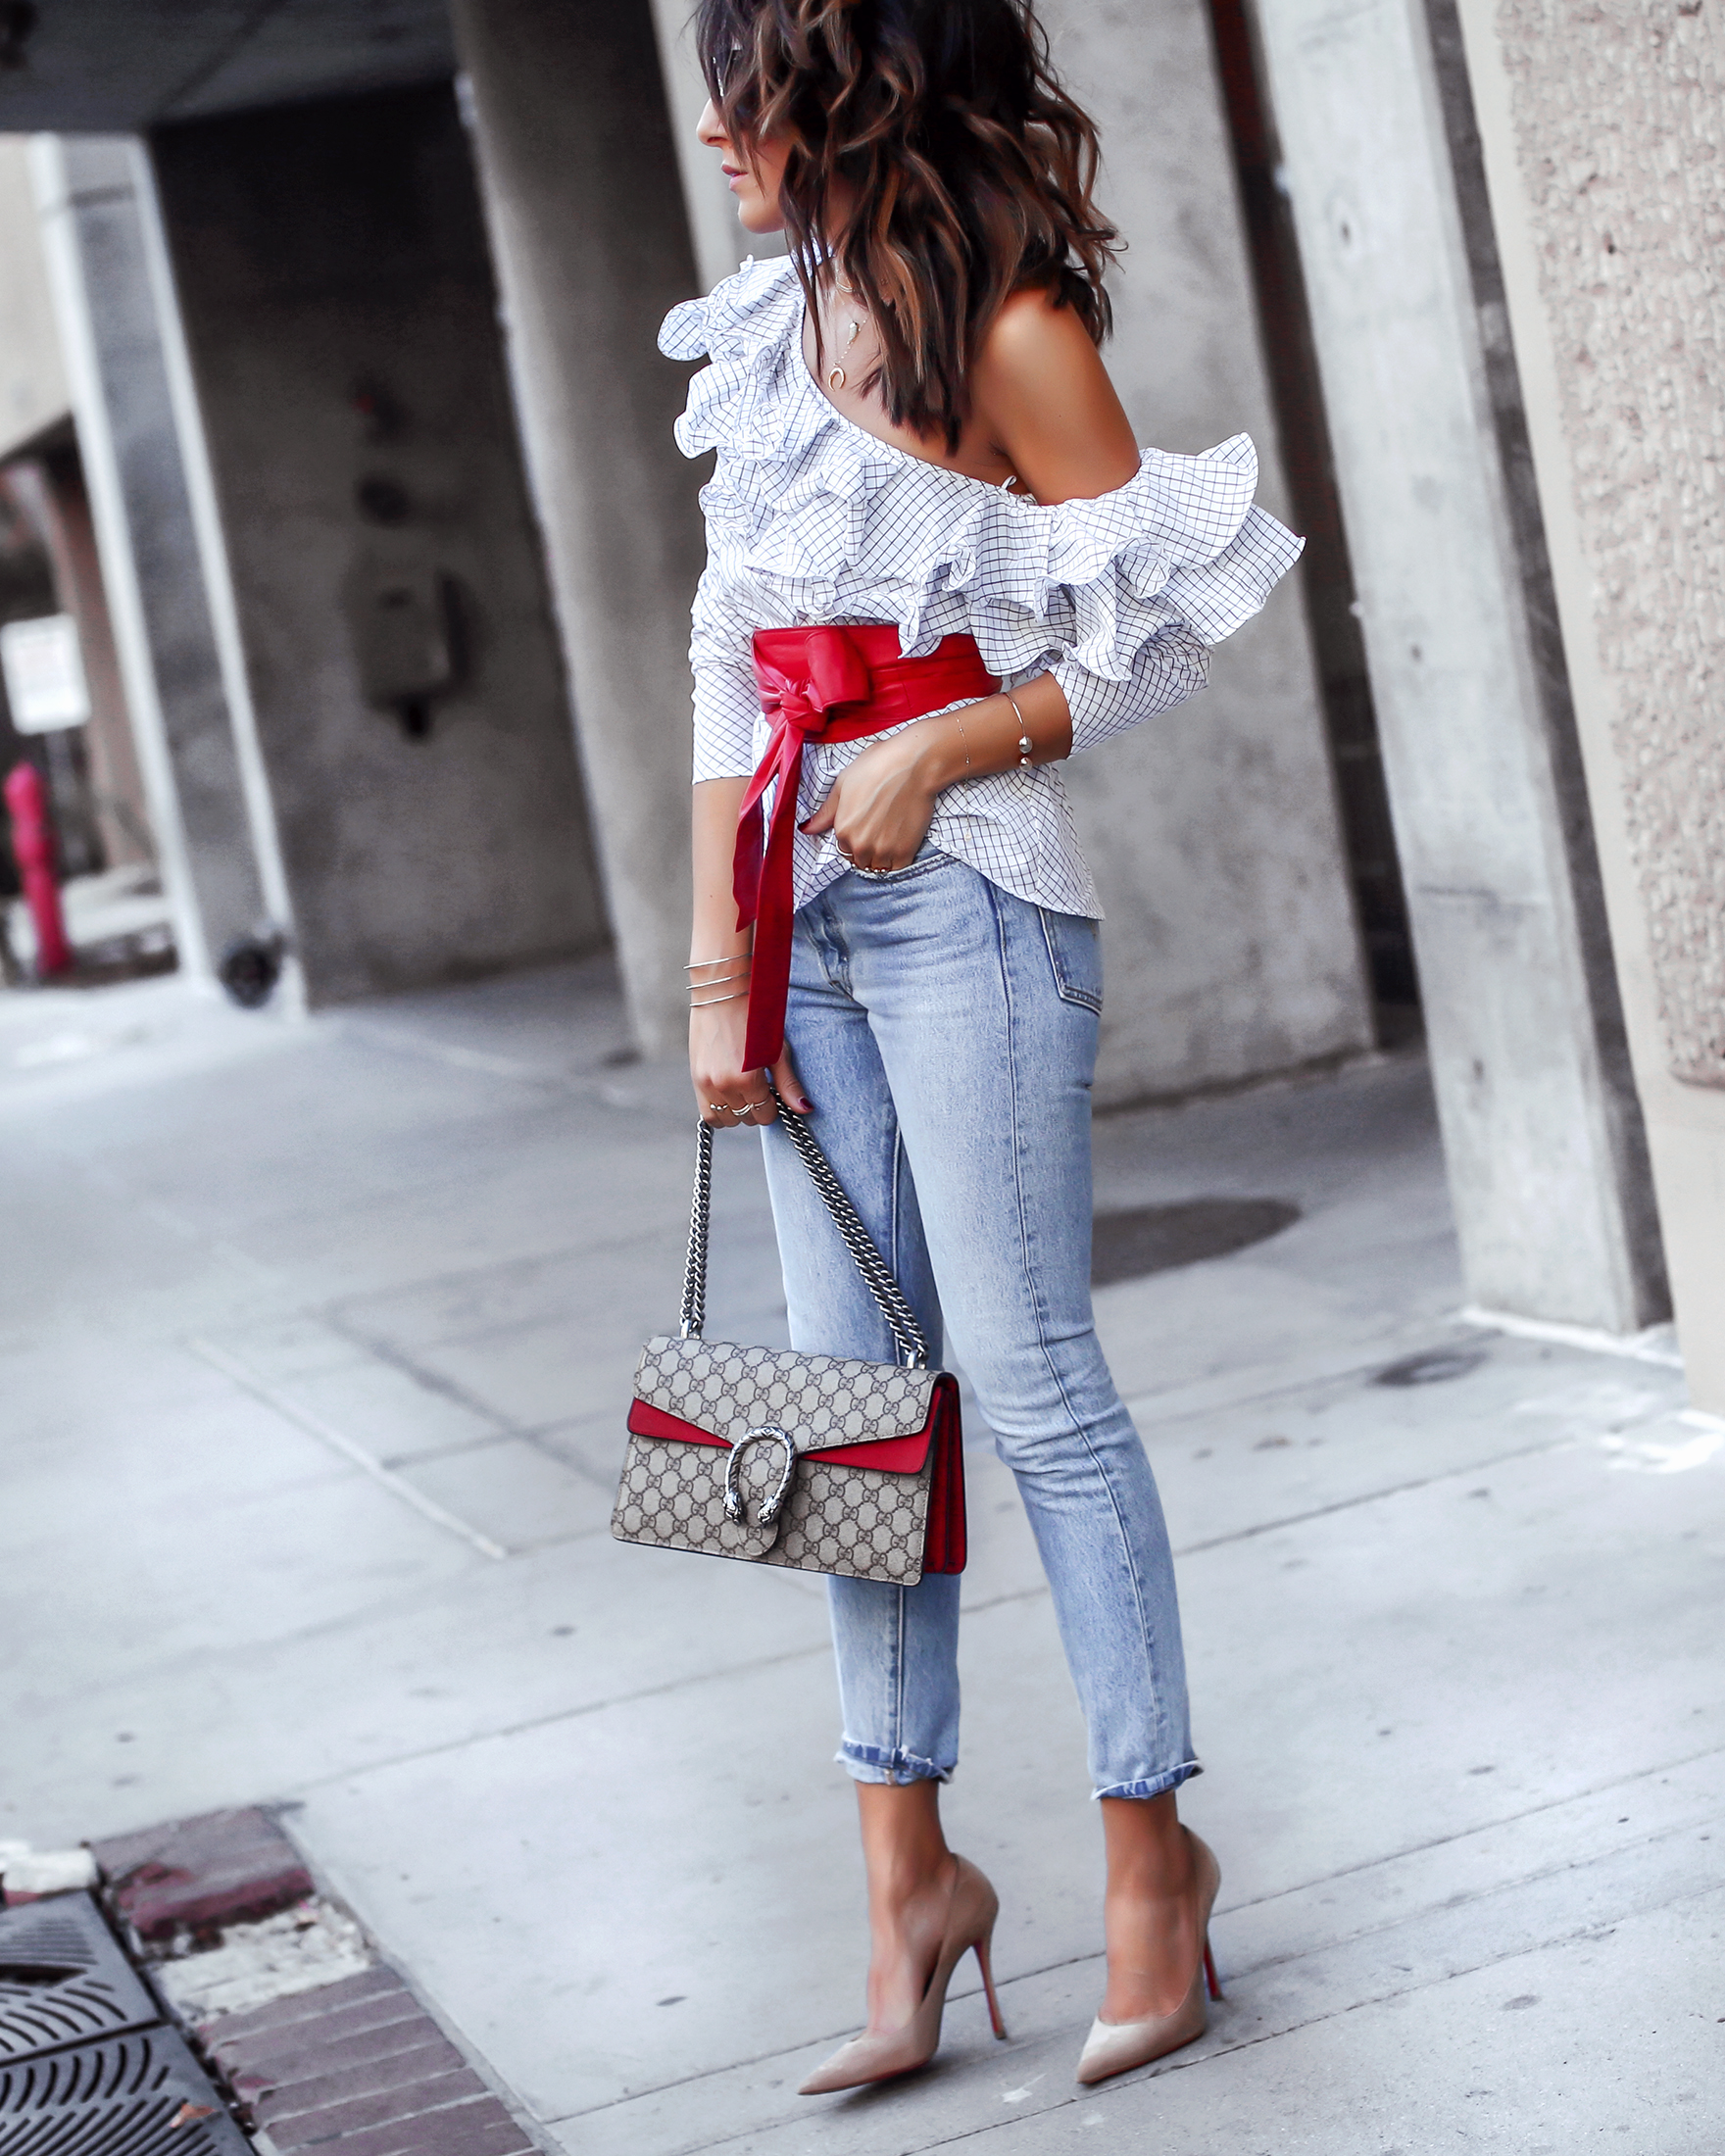 Brunette Woman in Levis and One Shoulder Top